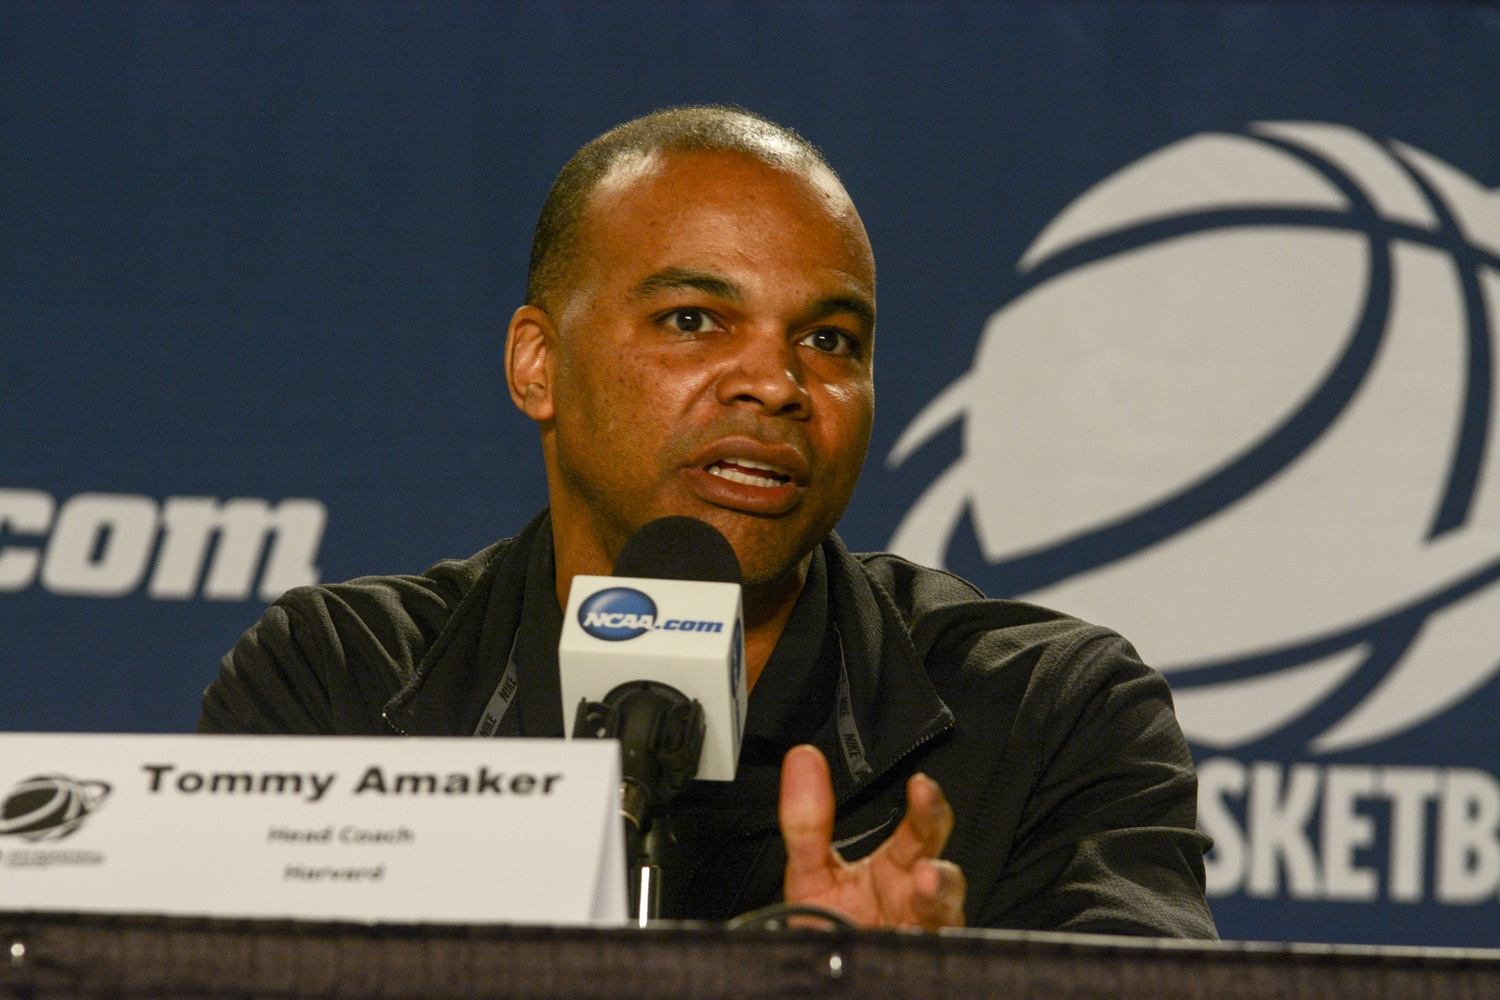 Recruited by renowned Duke coach Mike Krzyzewski, Harvard coach Tommy Amaker can be considered as part of the foundation of a program that, in the past 30 years, has grown into the powerhouse that Duke is regarded as today. Now, Amaker finds himself coaching against Blue Devils rival North Carolina in the second round of the NCAA Tournament.